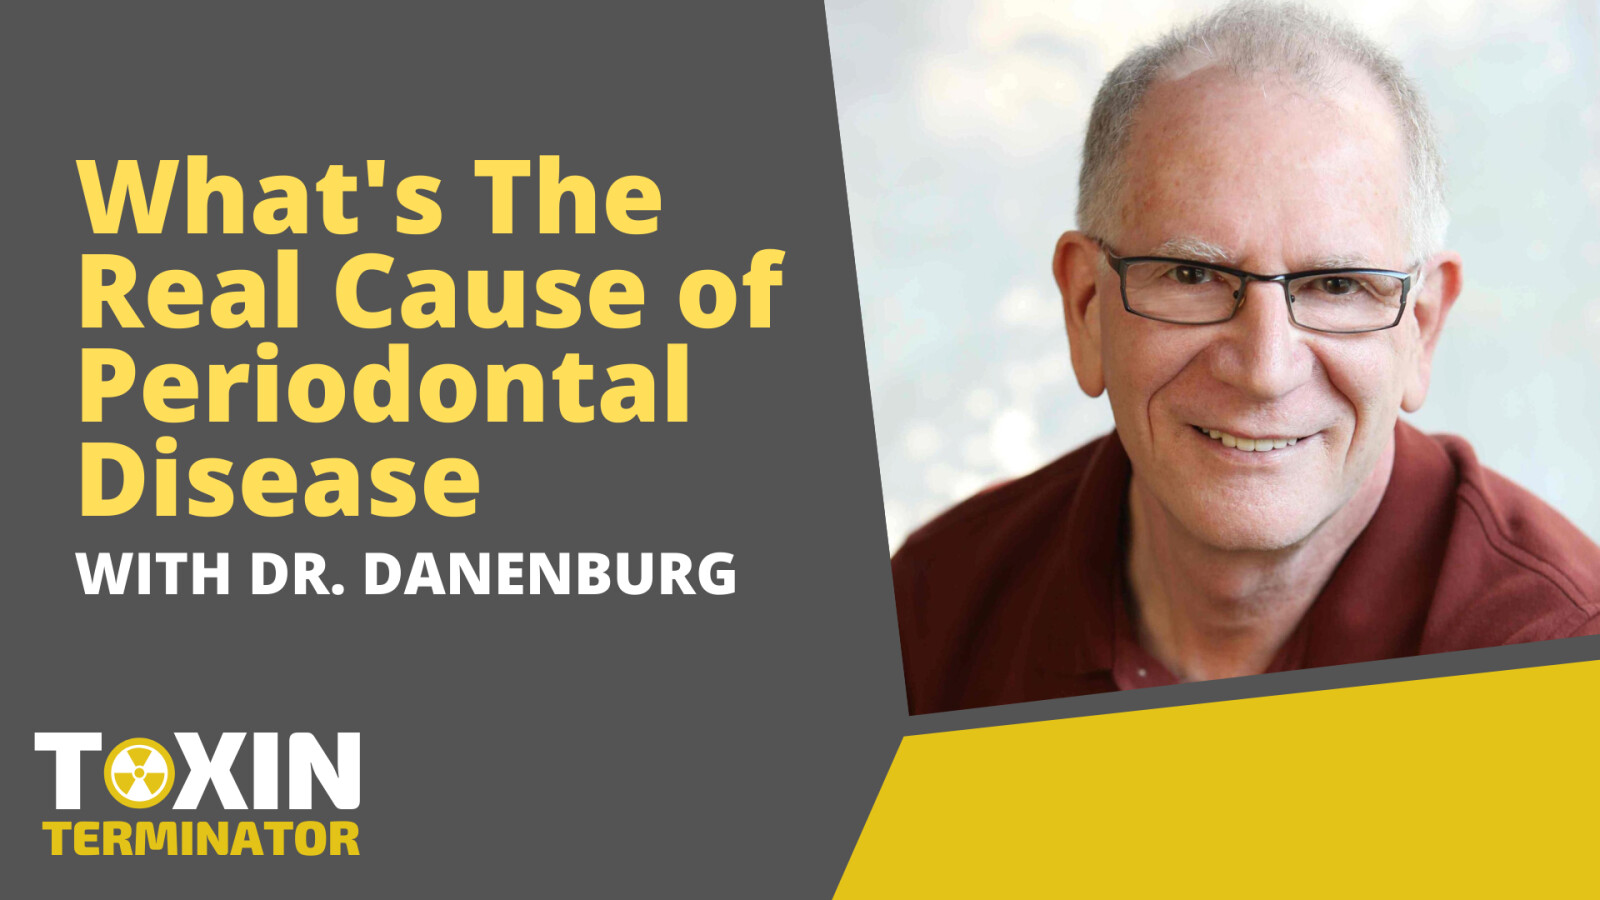 What's the real cause of periodontal disease with Dr. Danenburg